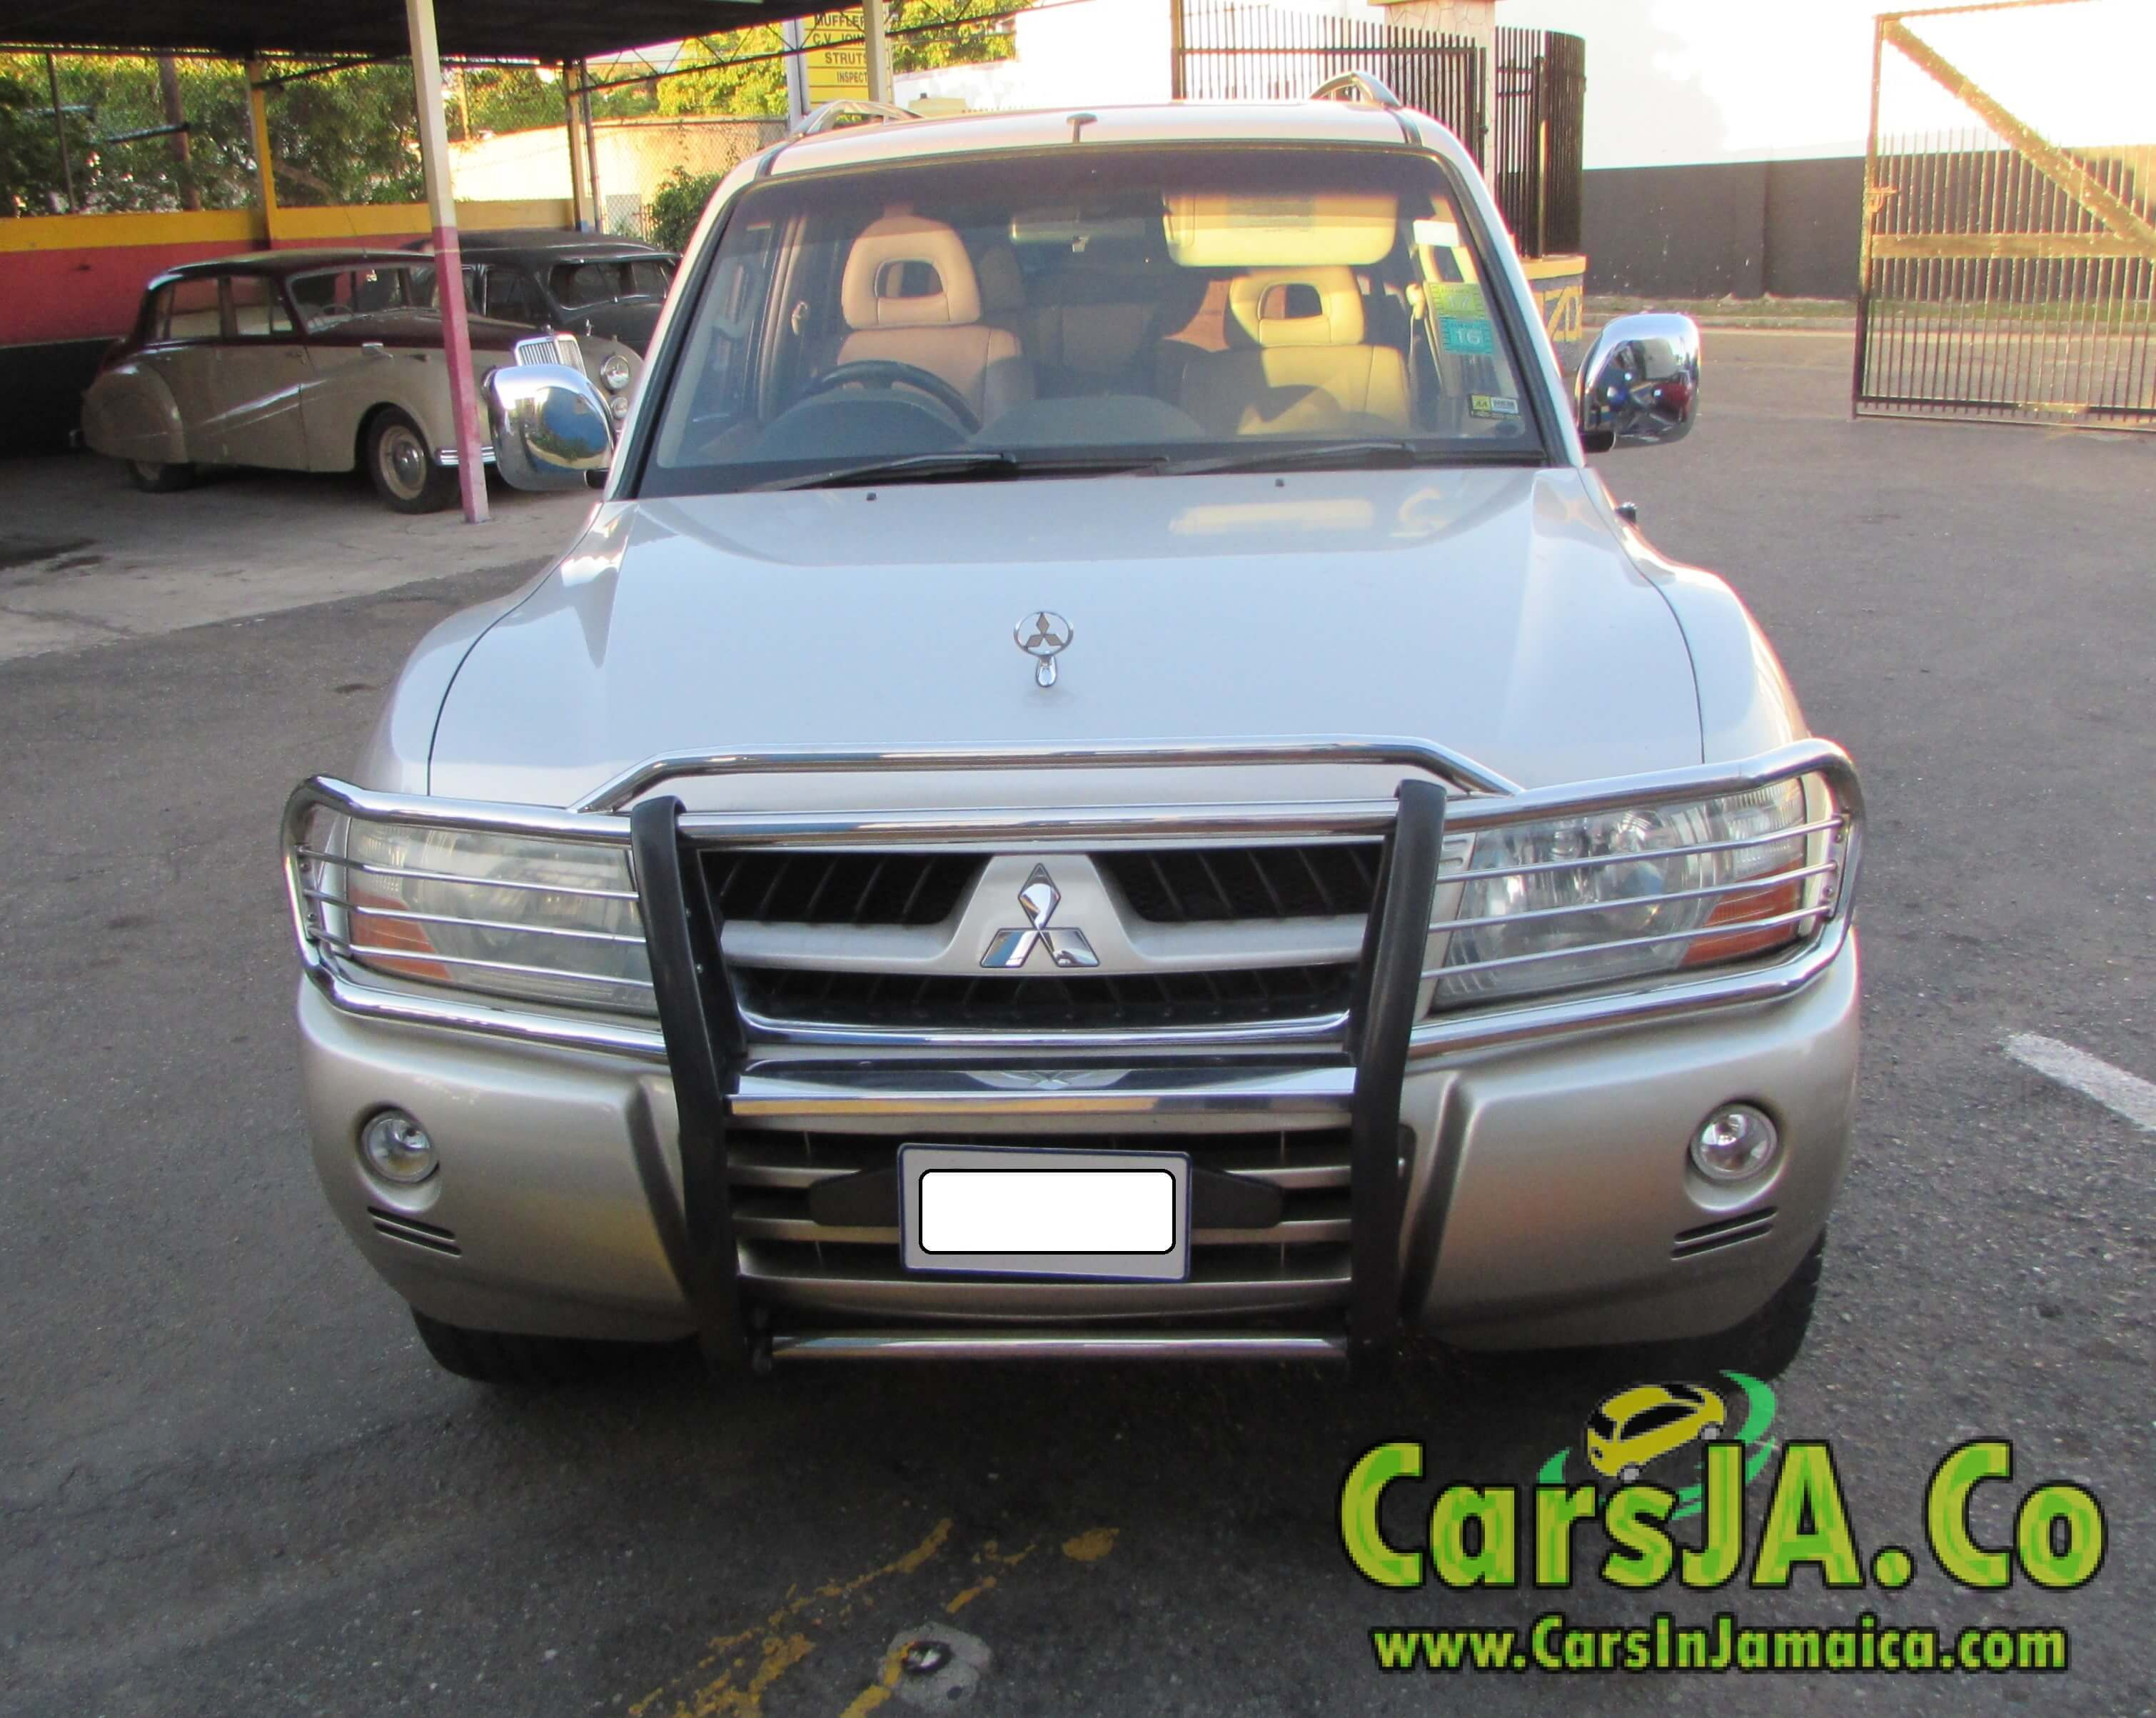 Auto For Sale Jamaica: Mitsubishi Cars For Sale In Jamaica